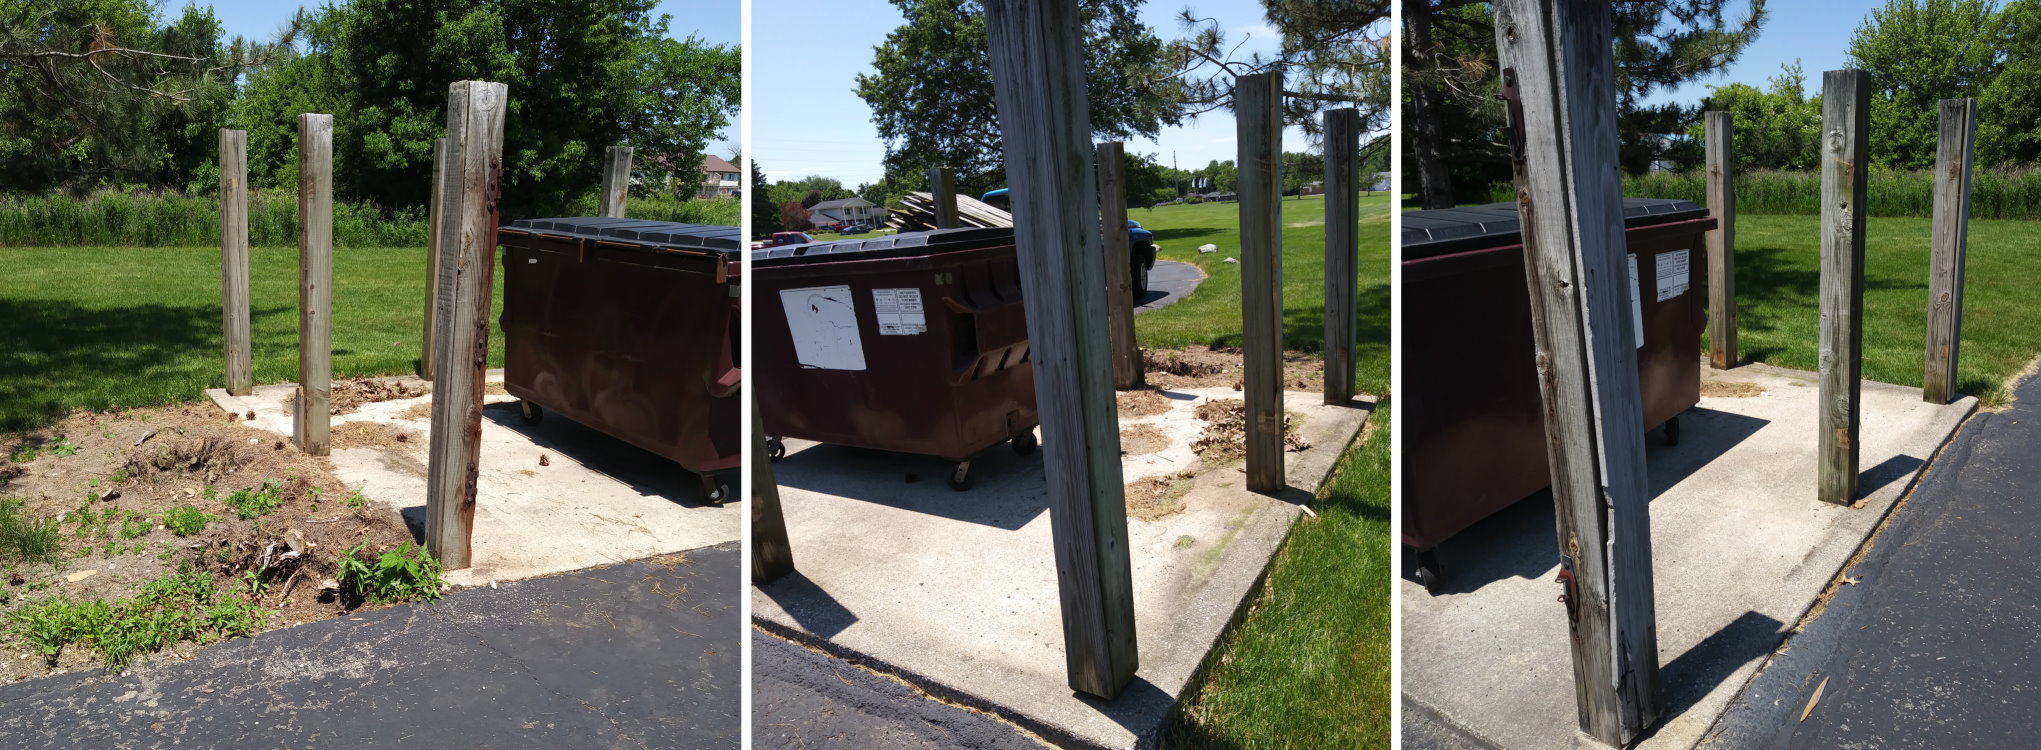 Dumpster fence replacement